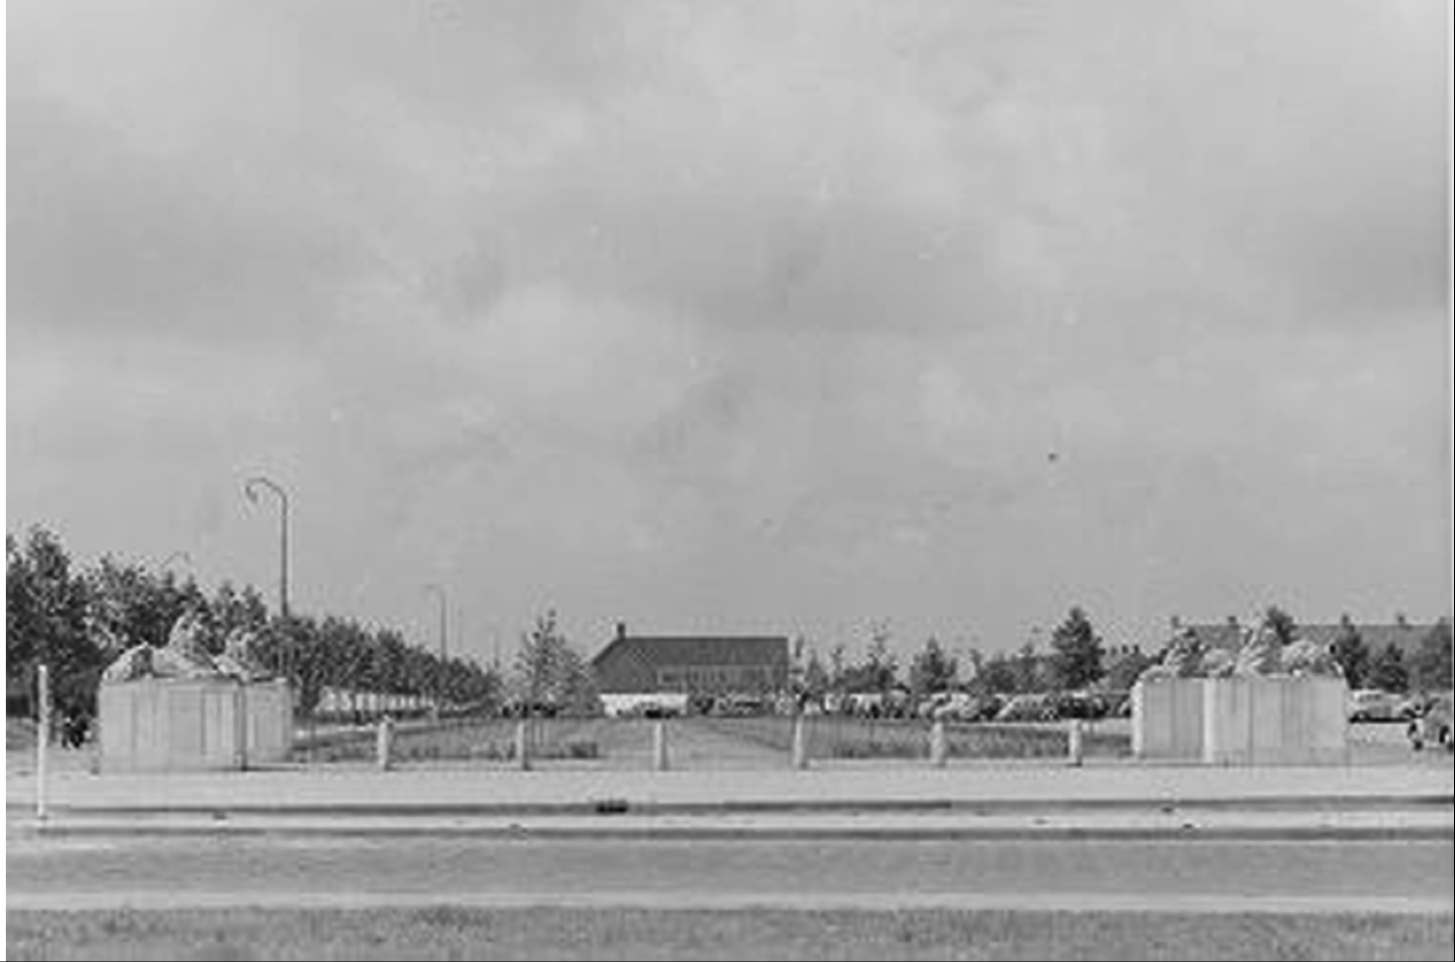 The monument of the four lion statues on De Deel, Emmeloord, 1953.